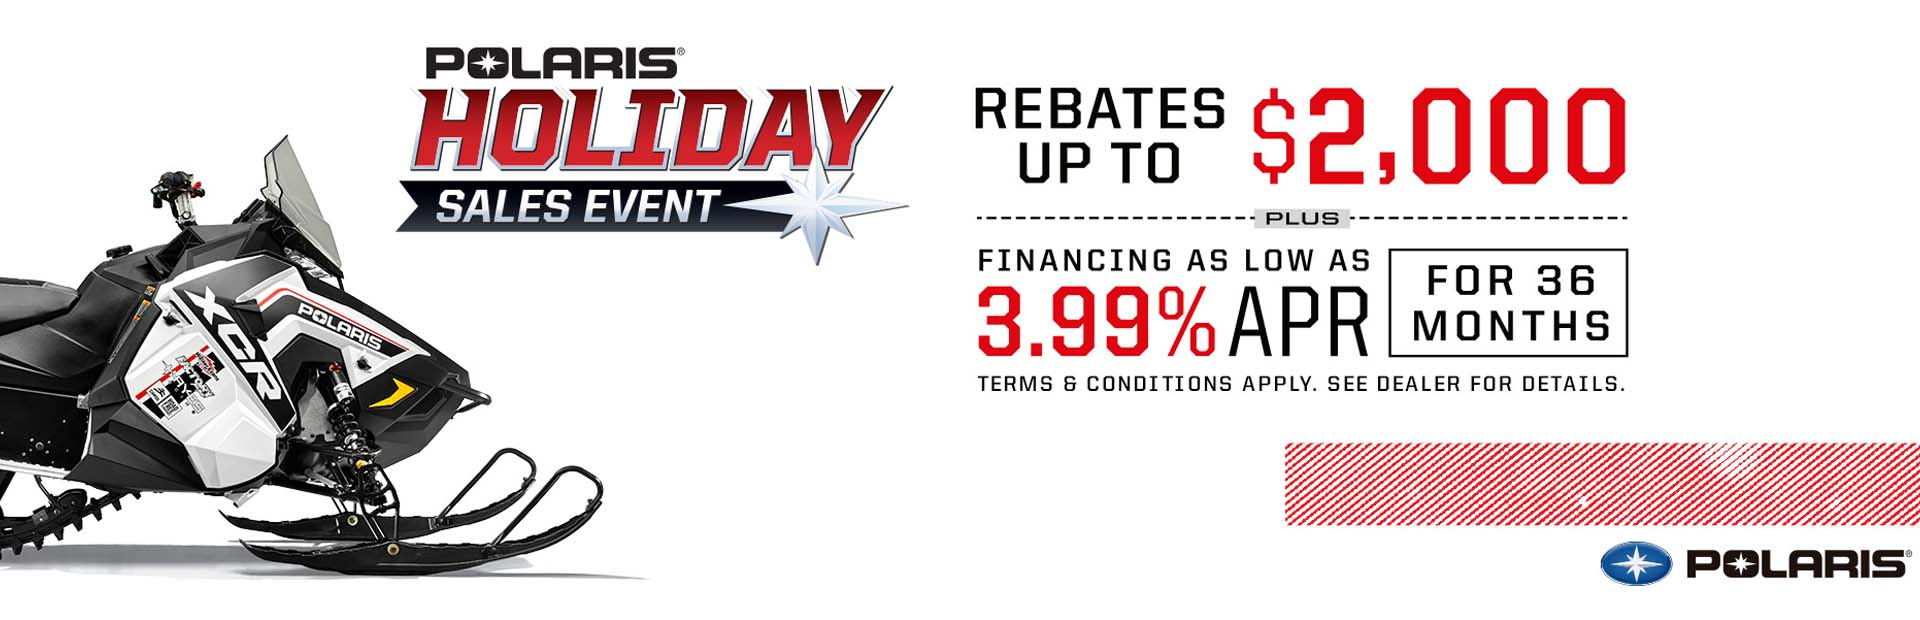 Polaris Industries: Polaris Holiday Sales Event - Snow